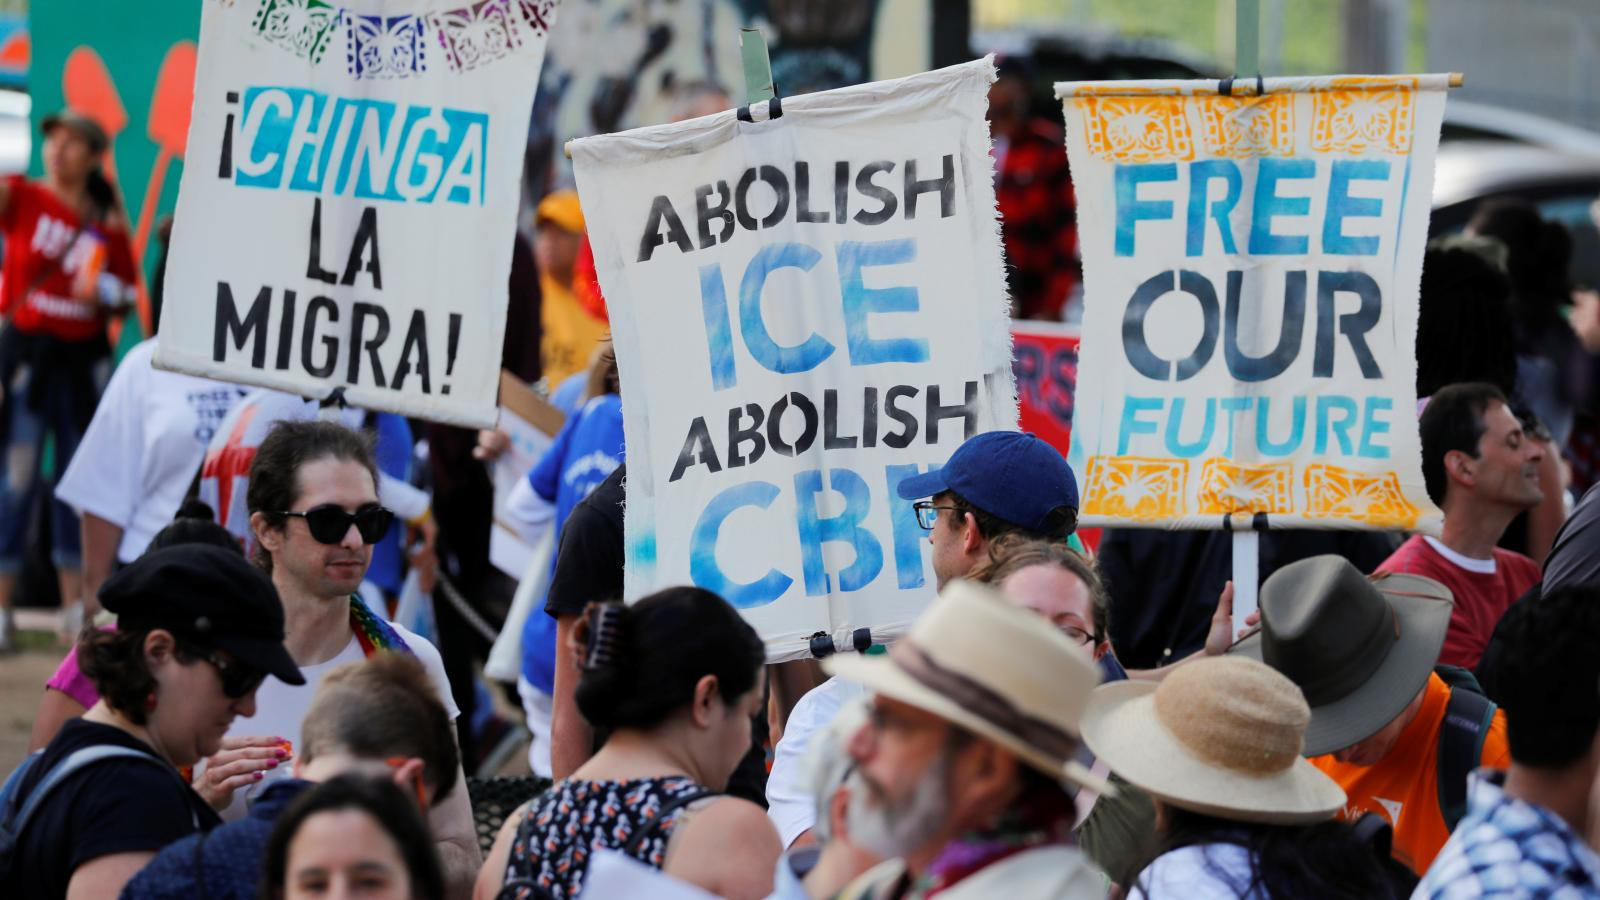 Abolish ICE: What are the facts behind the controversial agency ...